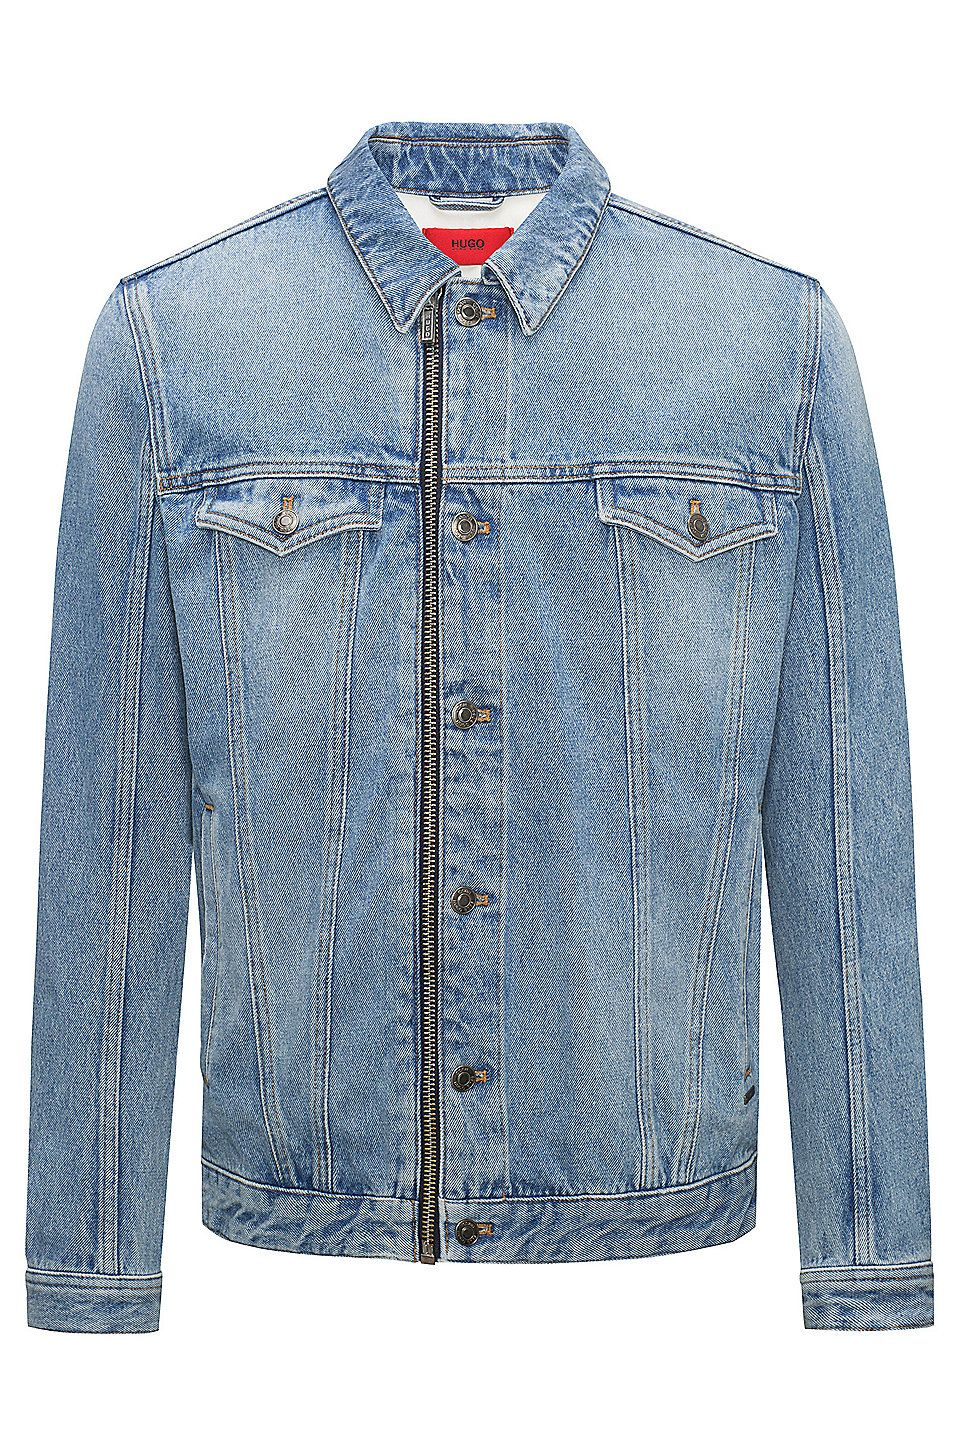 65d6c8d4ab HUGO BOSS Light-wash denim jacket with zip front - Blue Casual Jackets from  HUGO for Men in the official HUGO BOSS Online Store free shipping